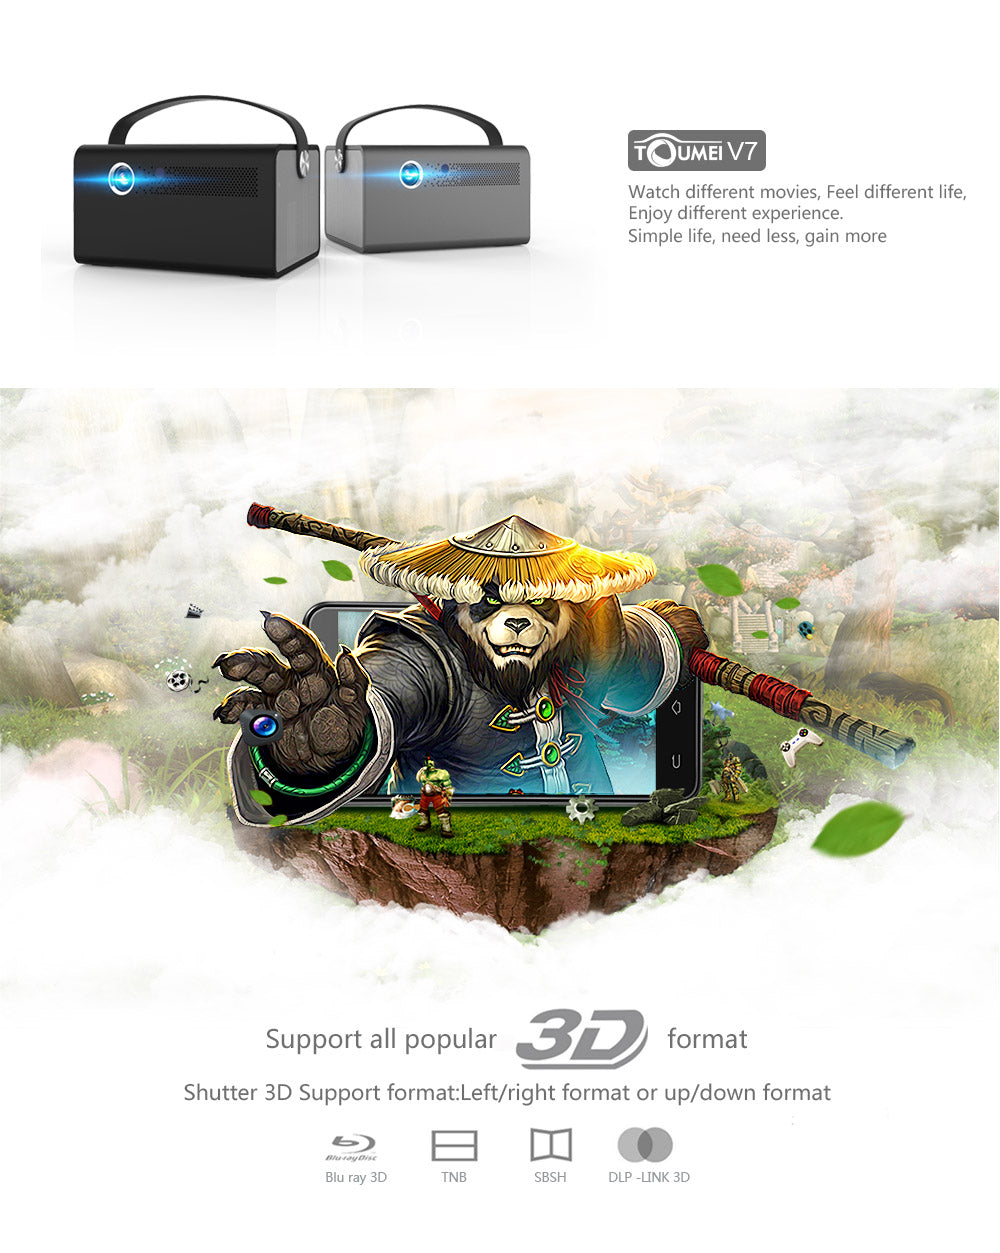 Toumei V7 3D Projector Features 01